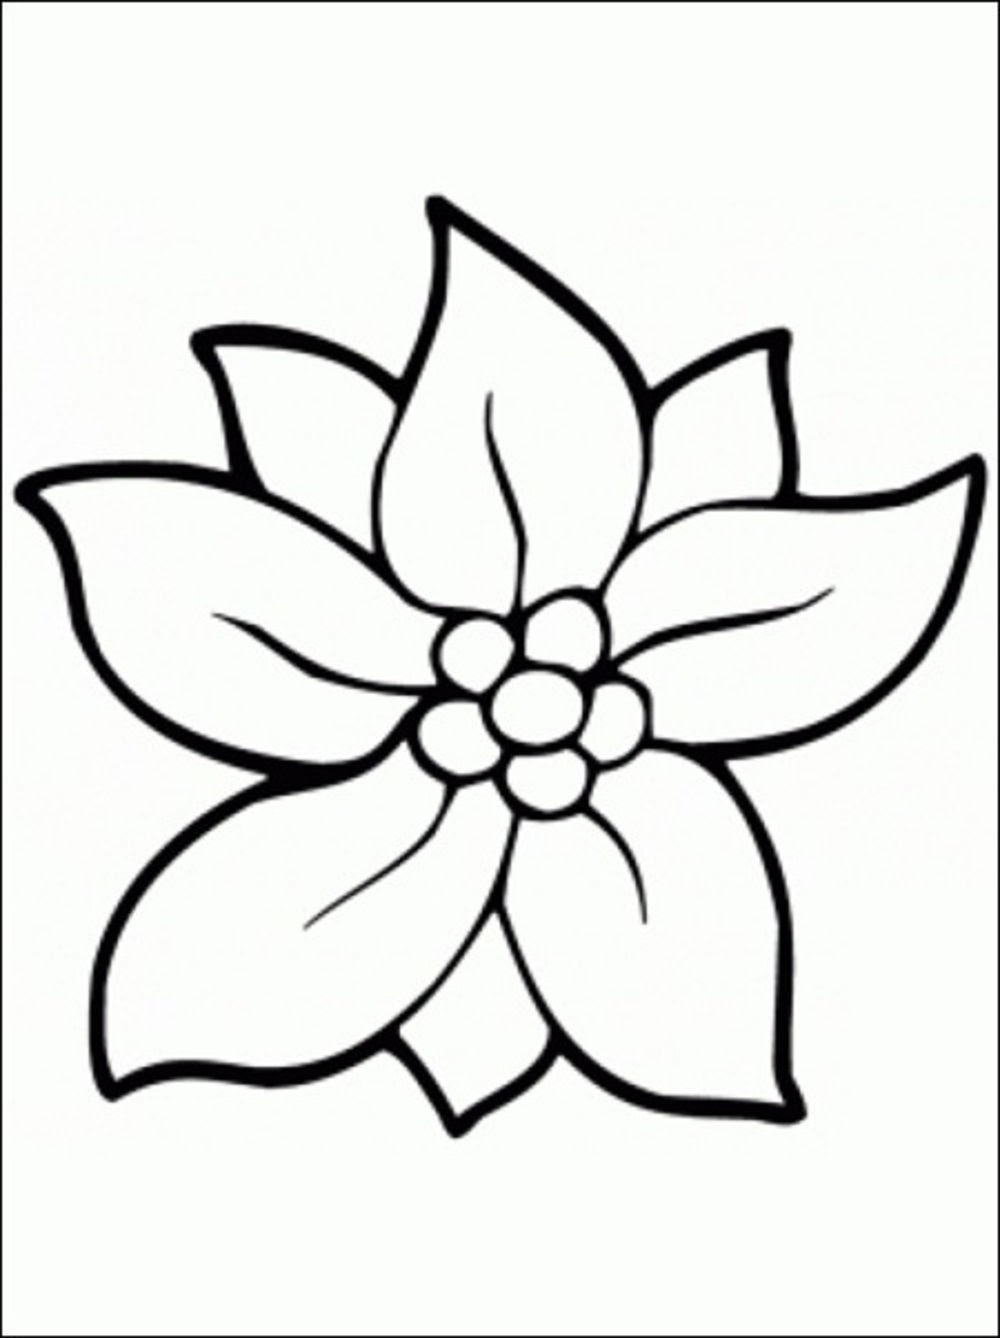 5th Grade Math Coloring Pages | Free download on ClipArtMag